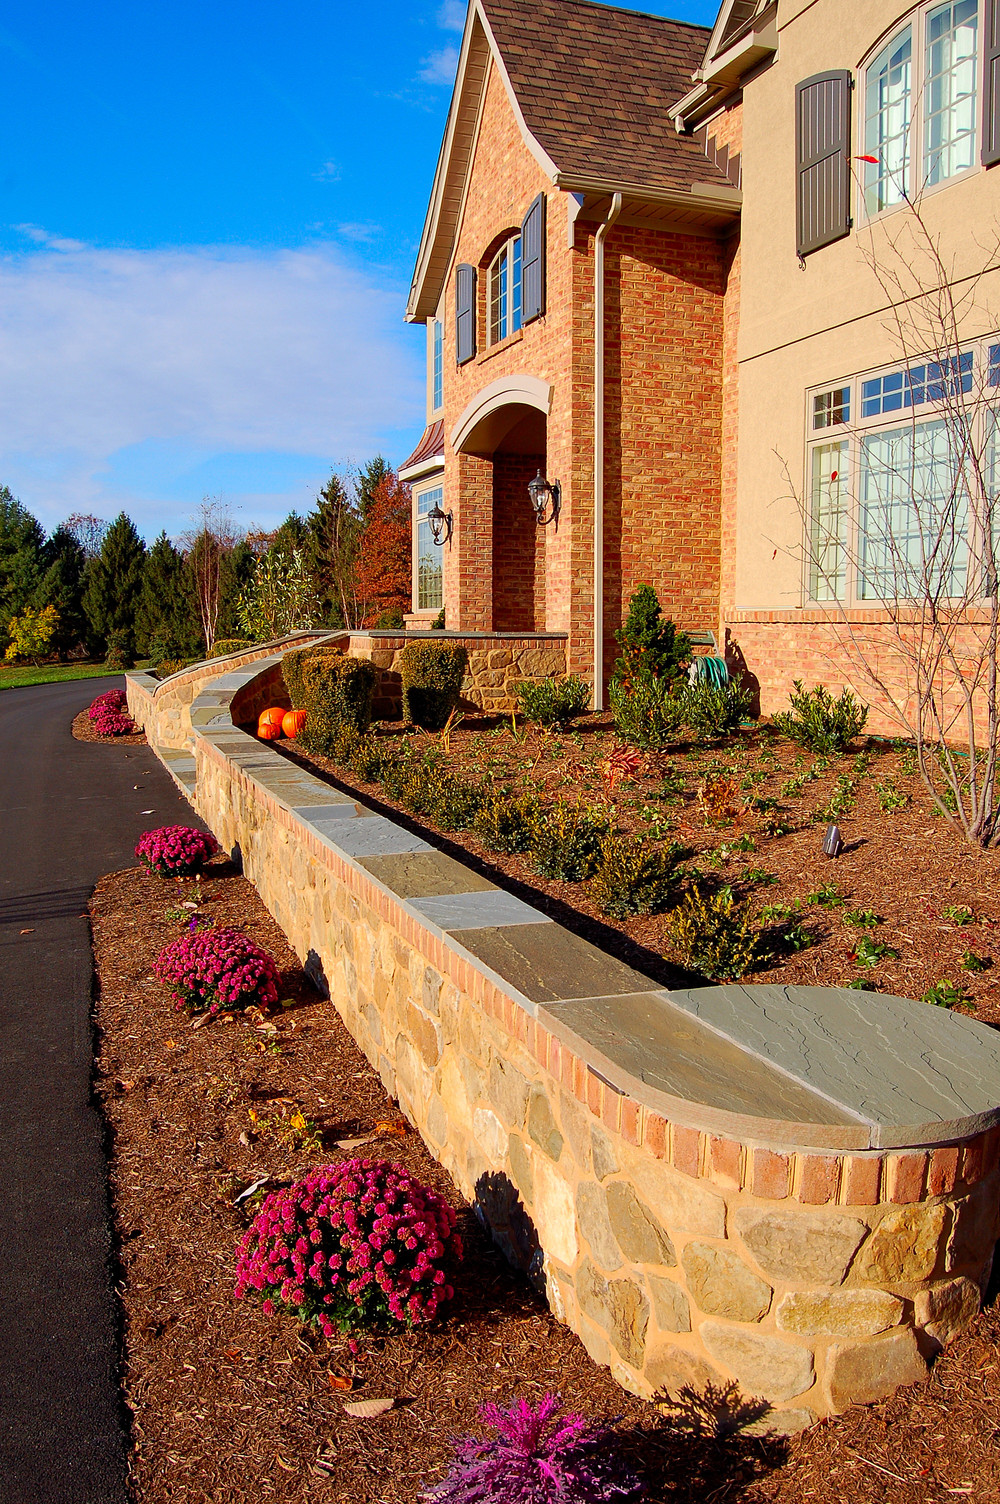 Landscape architecture with front entrance retaining walls